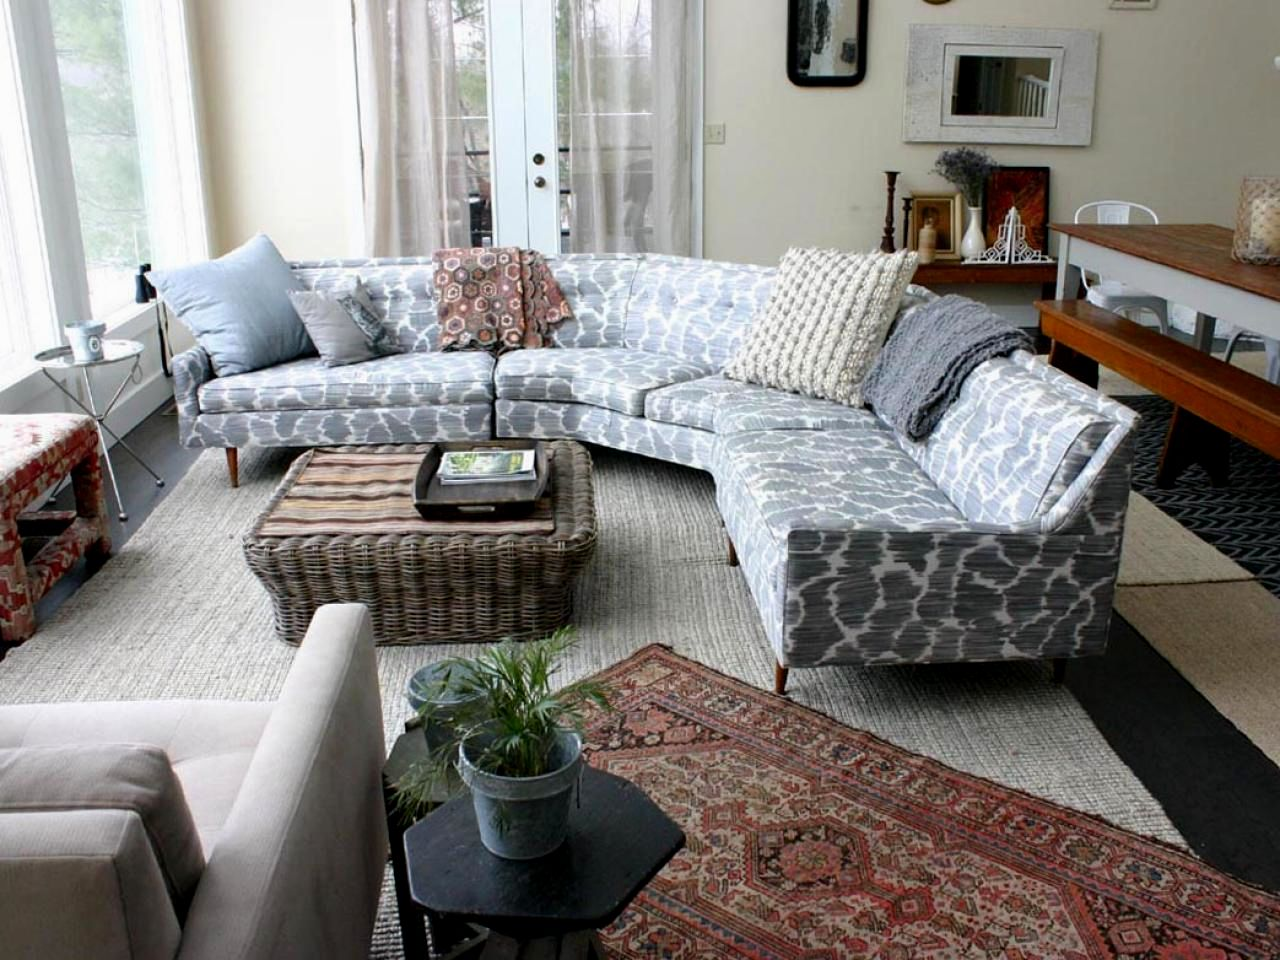 modern modular sofa bed pattern-Lovely Modular sofa Bed Photo